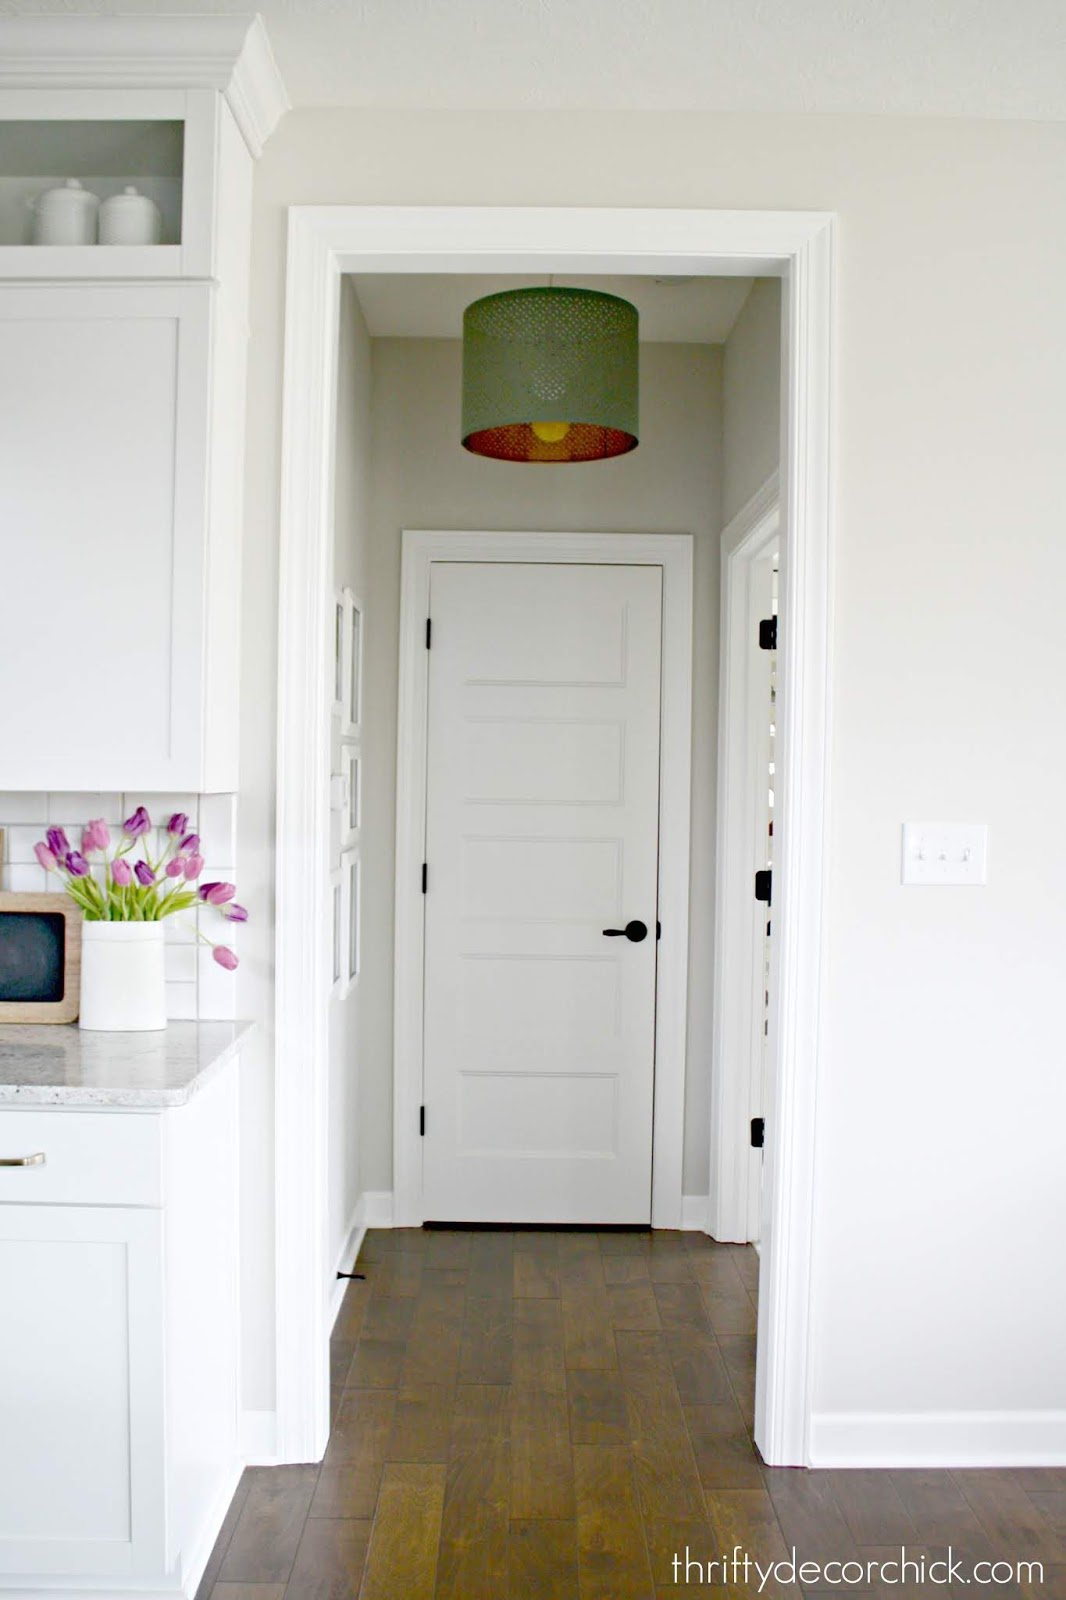 How to change out recessed light for hanging light